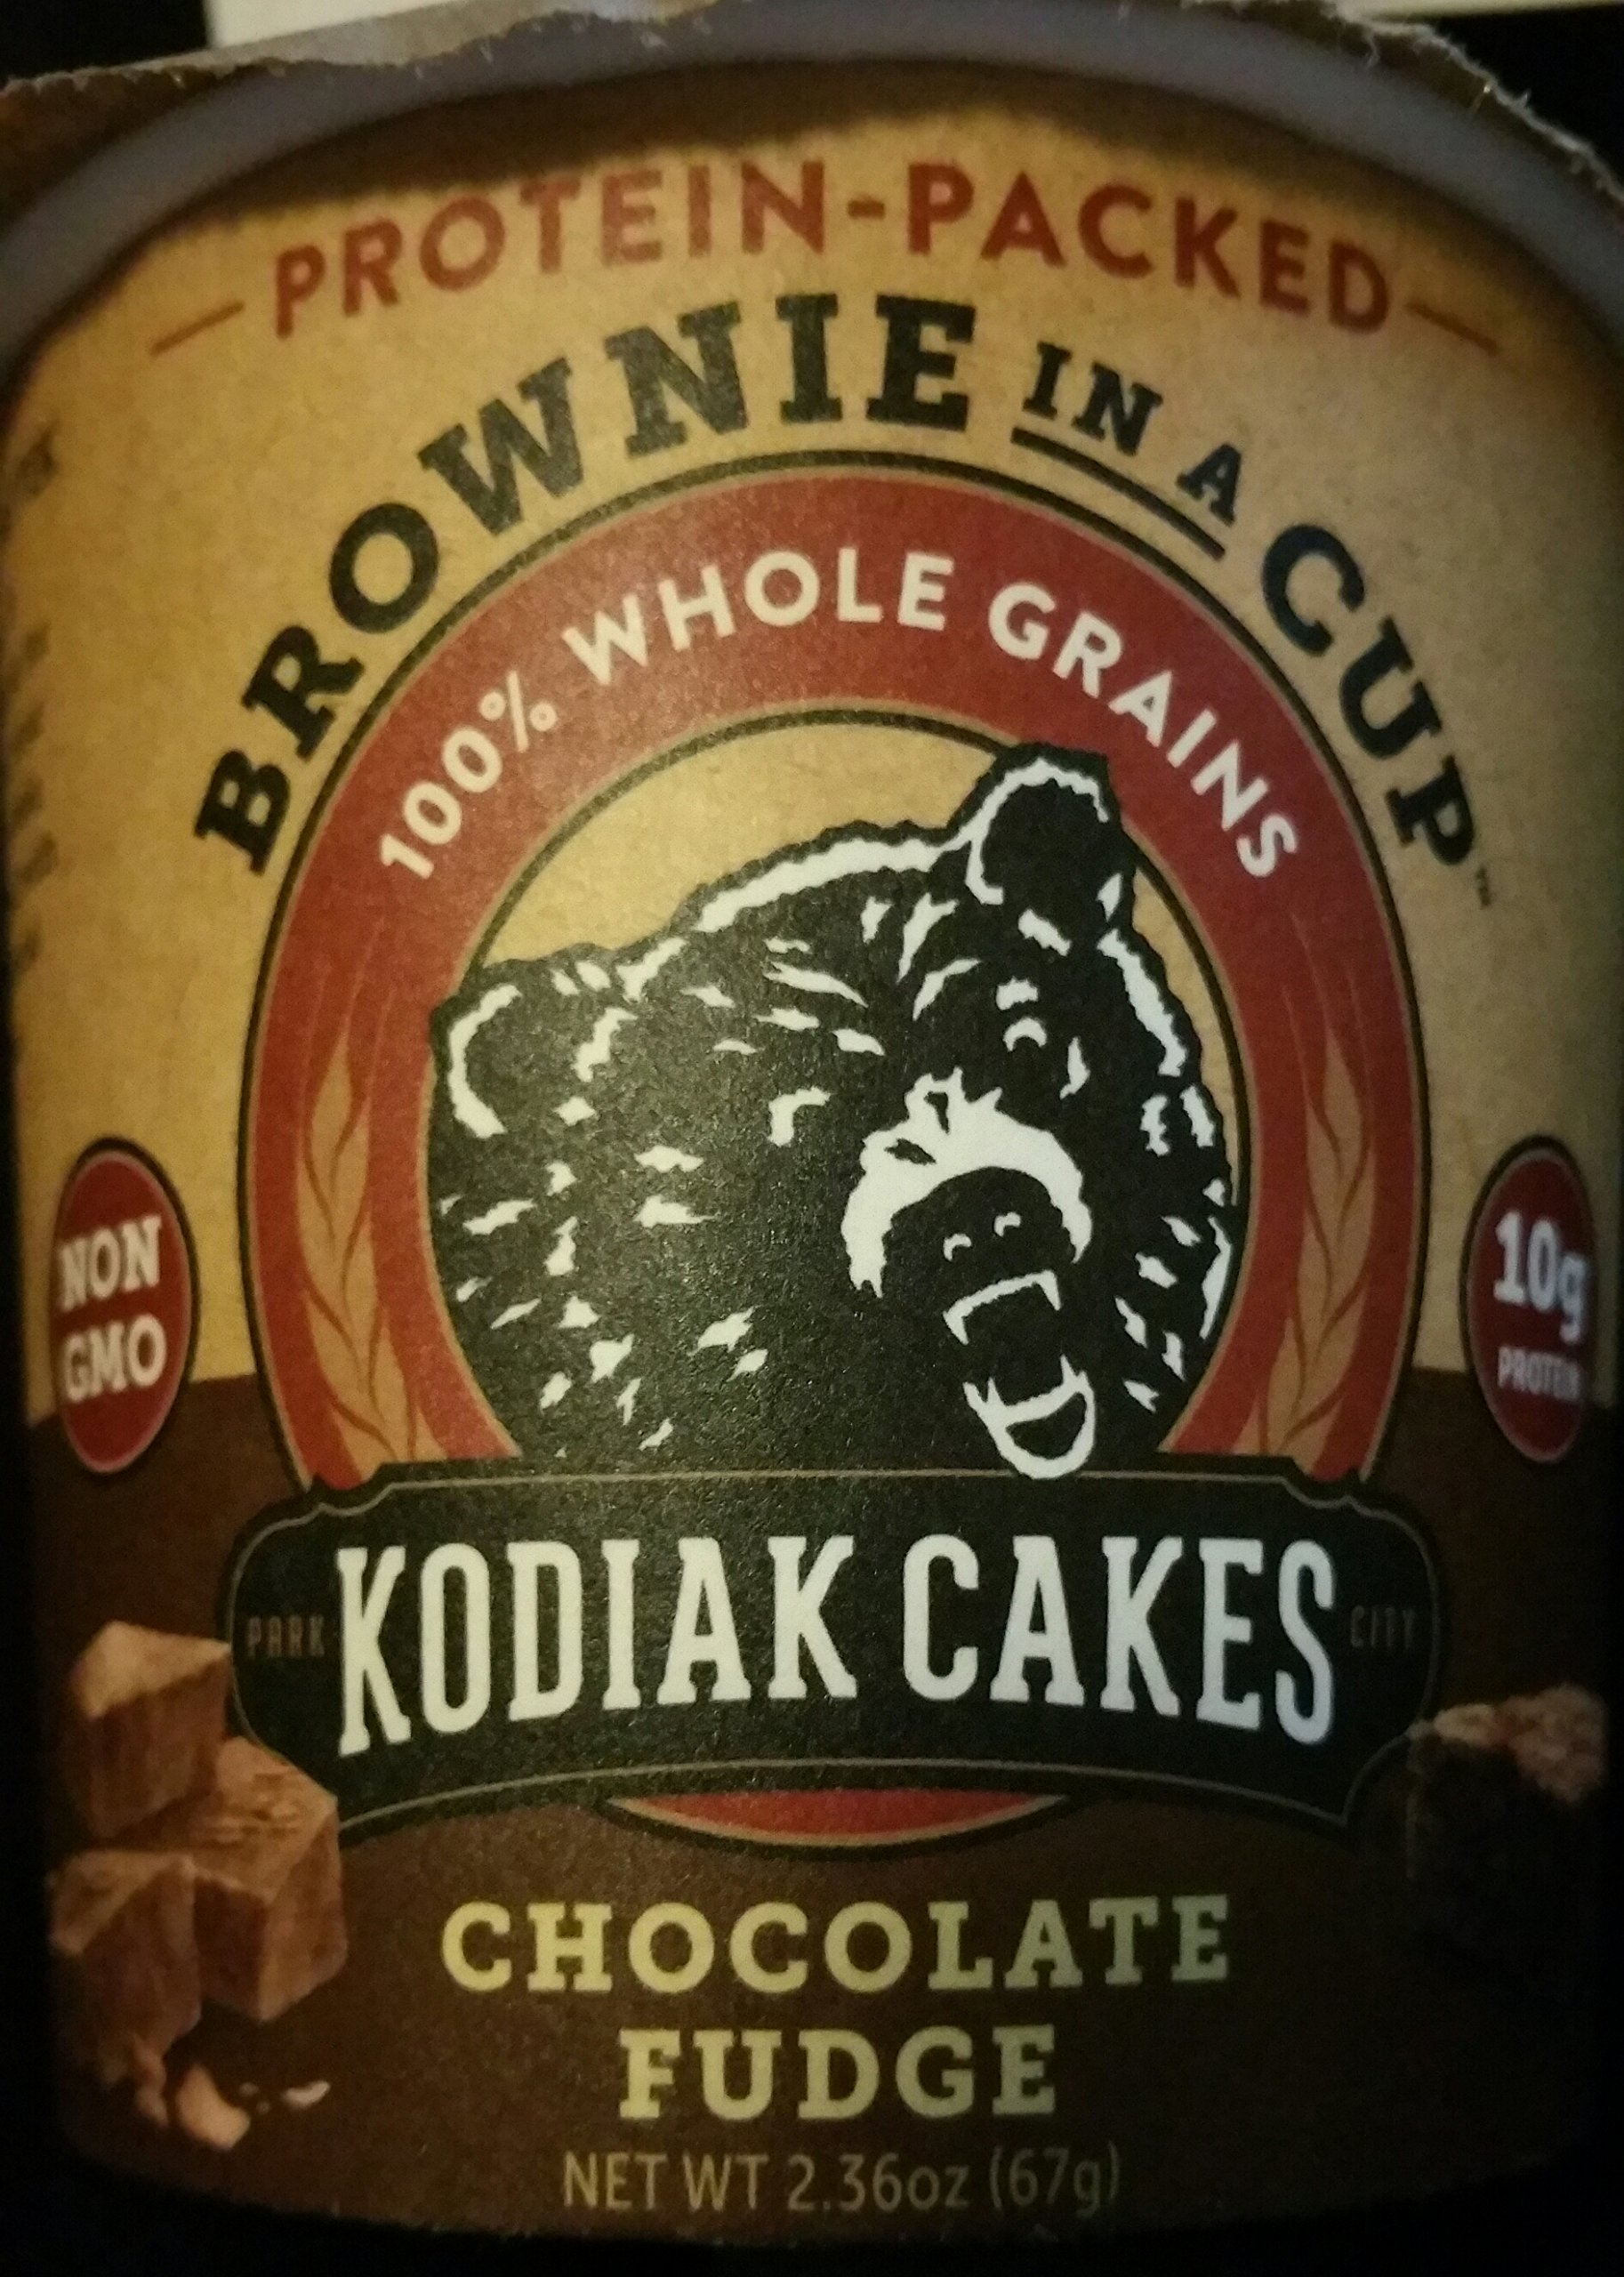 Kodiak Cakes Protein- Packed BROWNIE IN A CUP 100% Whole Grains Chocolate Fudge (1-CUP) (NET WT 2.36 OZ)